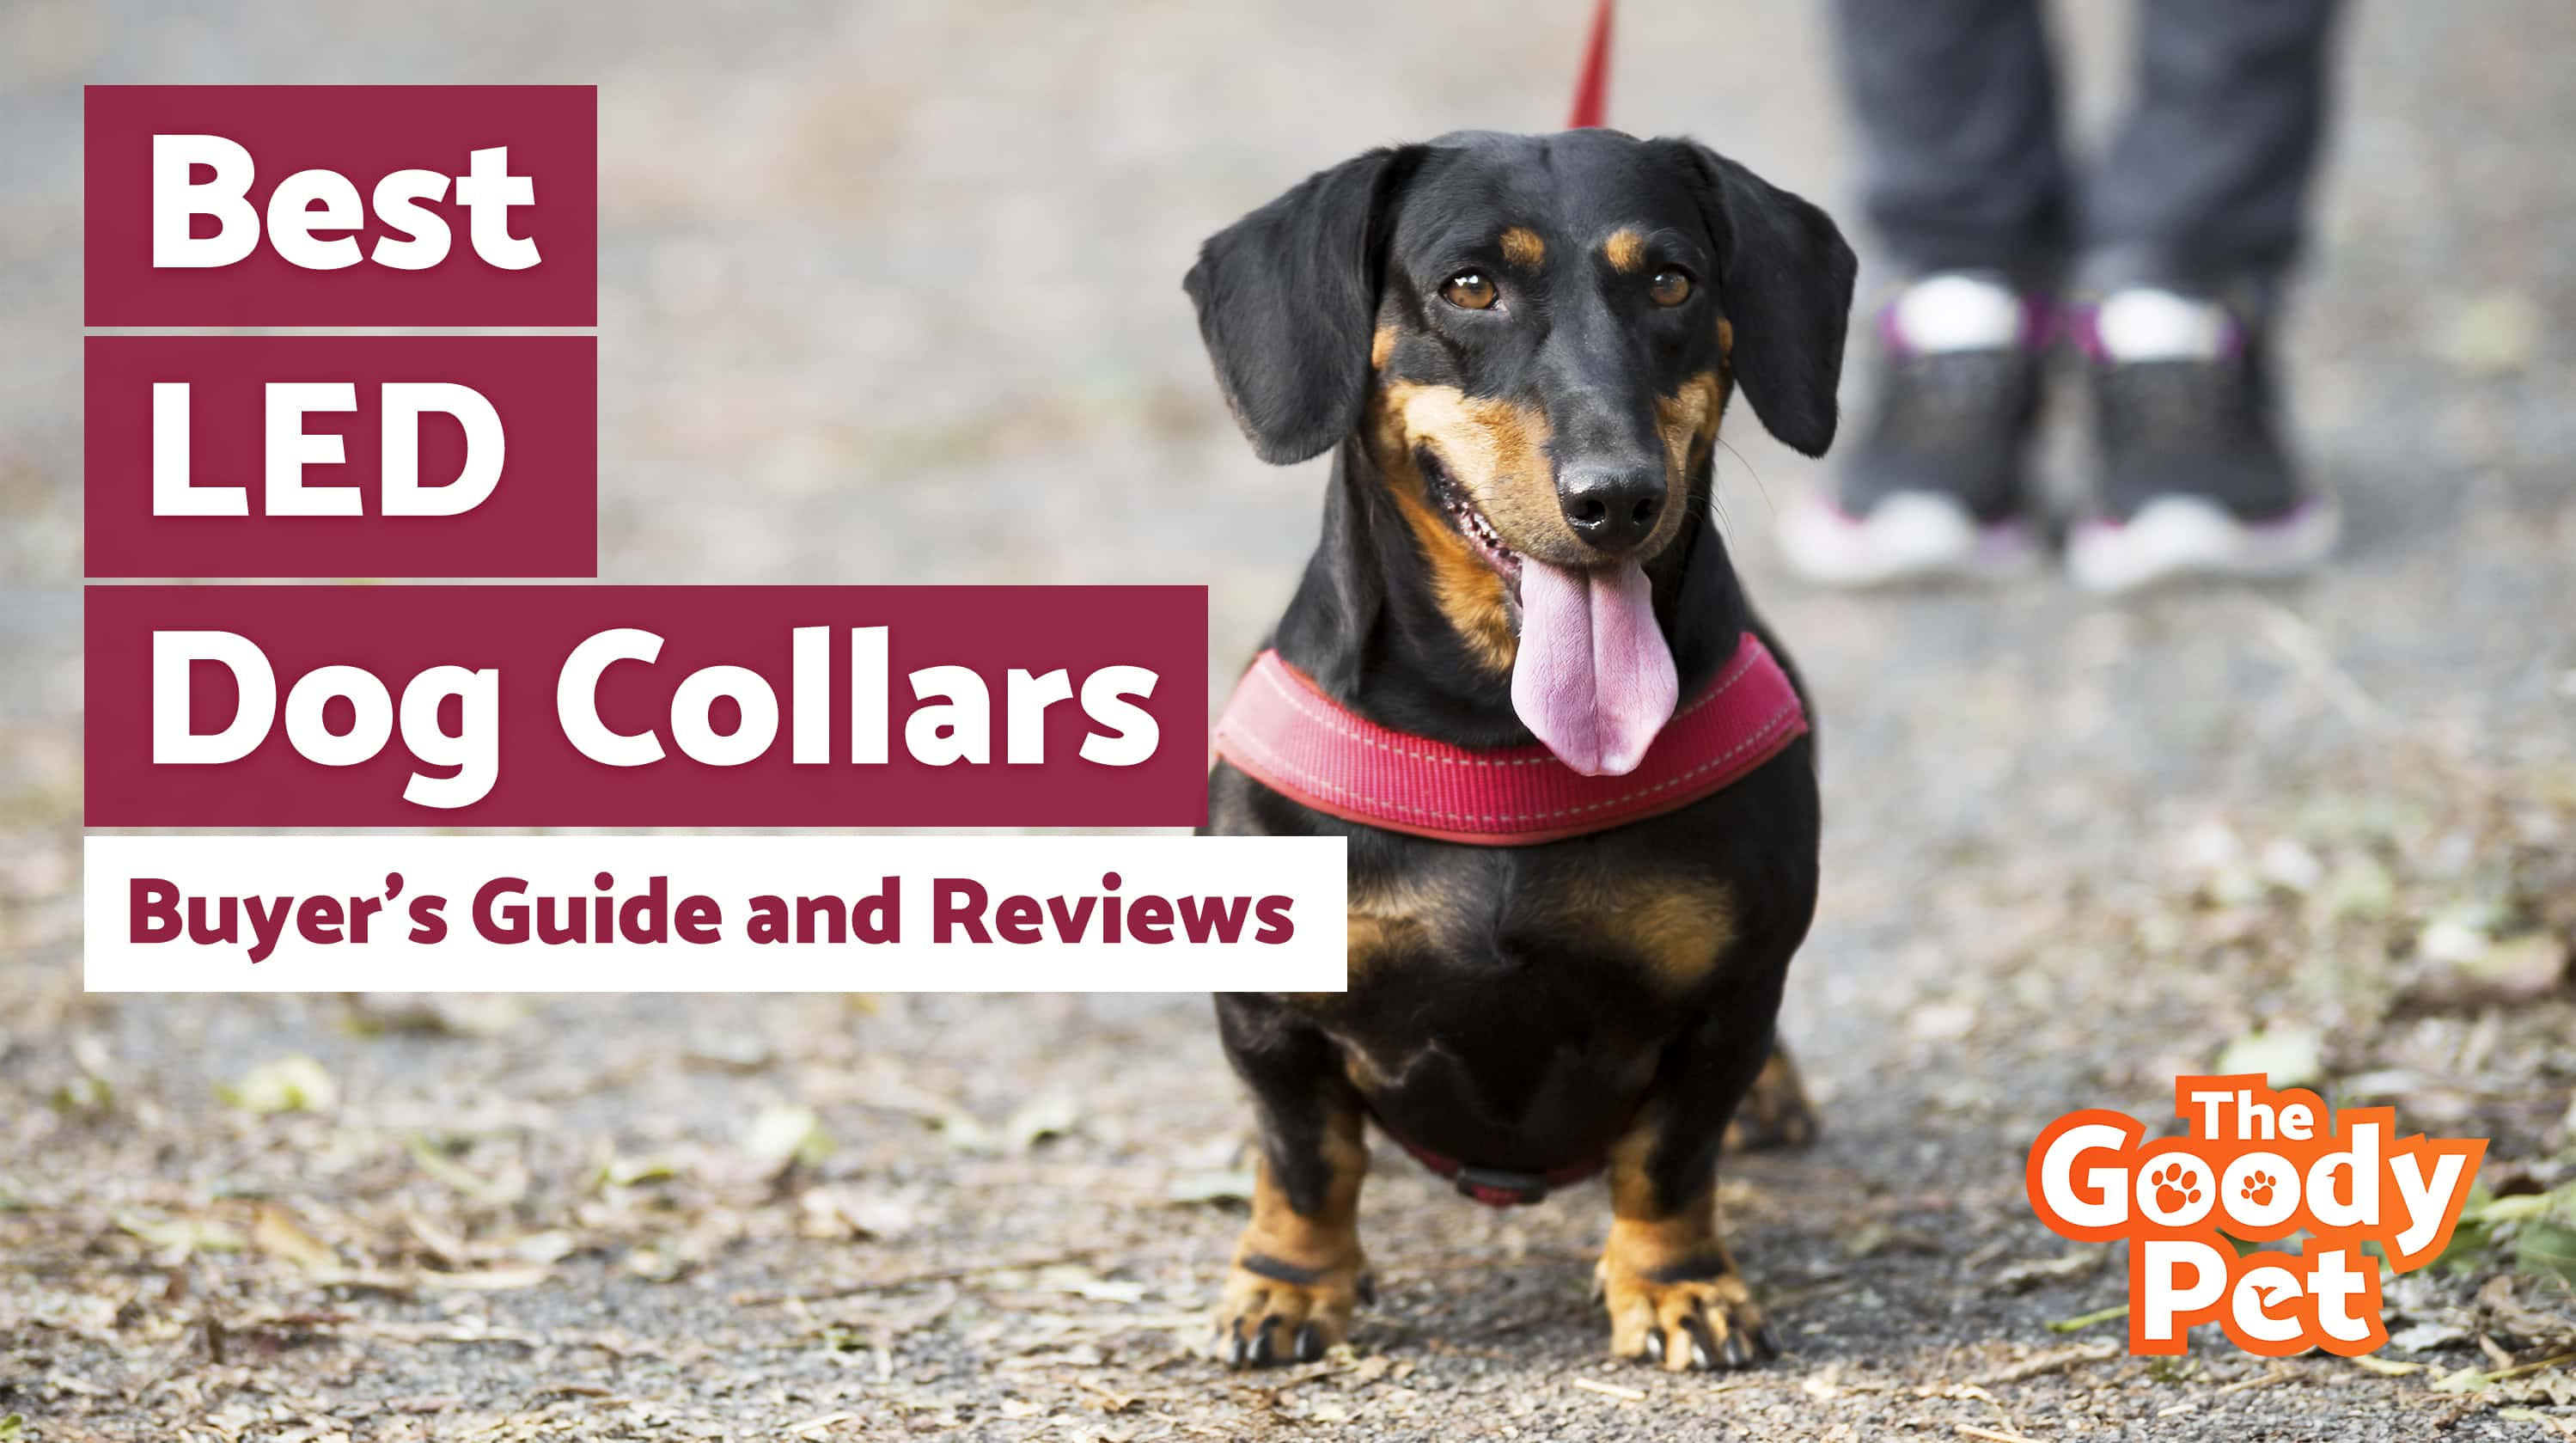 Best LED Dog Collars For Your Furry Friend – Our 2019 Reviews & Top Picks